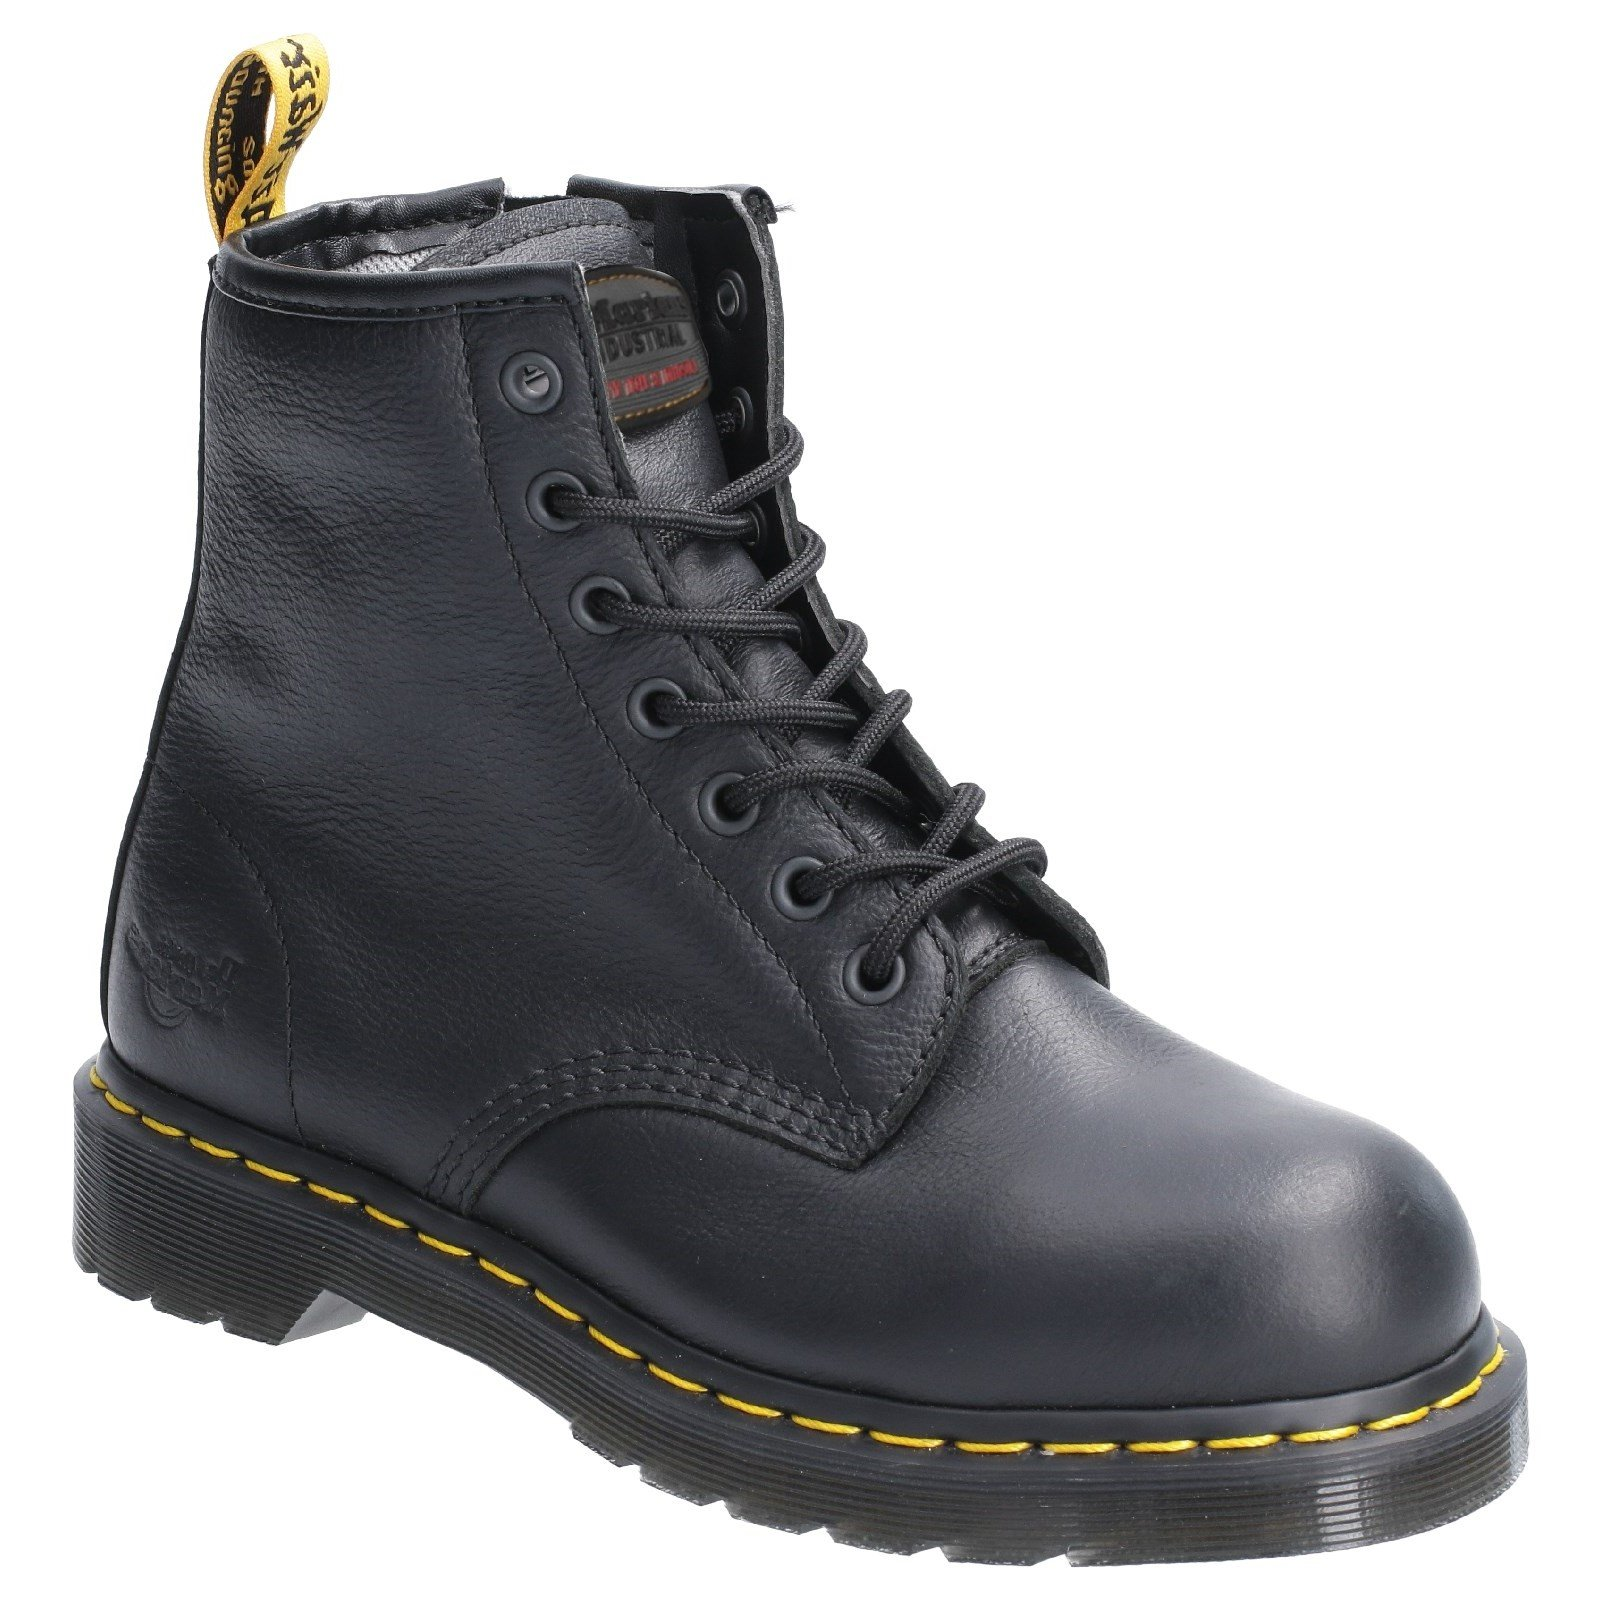 Dr Martens Women's Maple Zip Lace Up Safety Boot Various Colours 29515 - Black 9